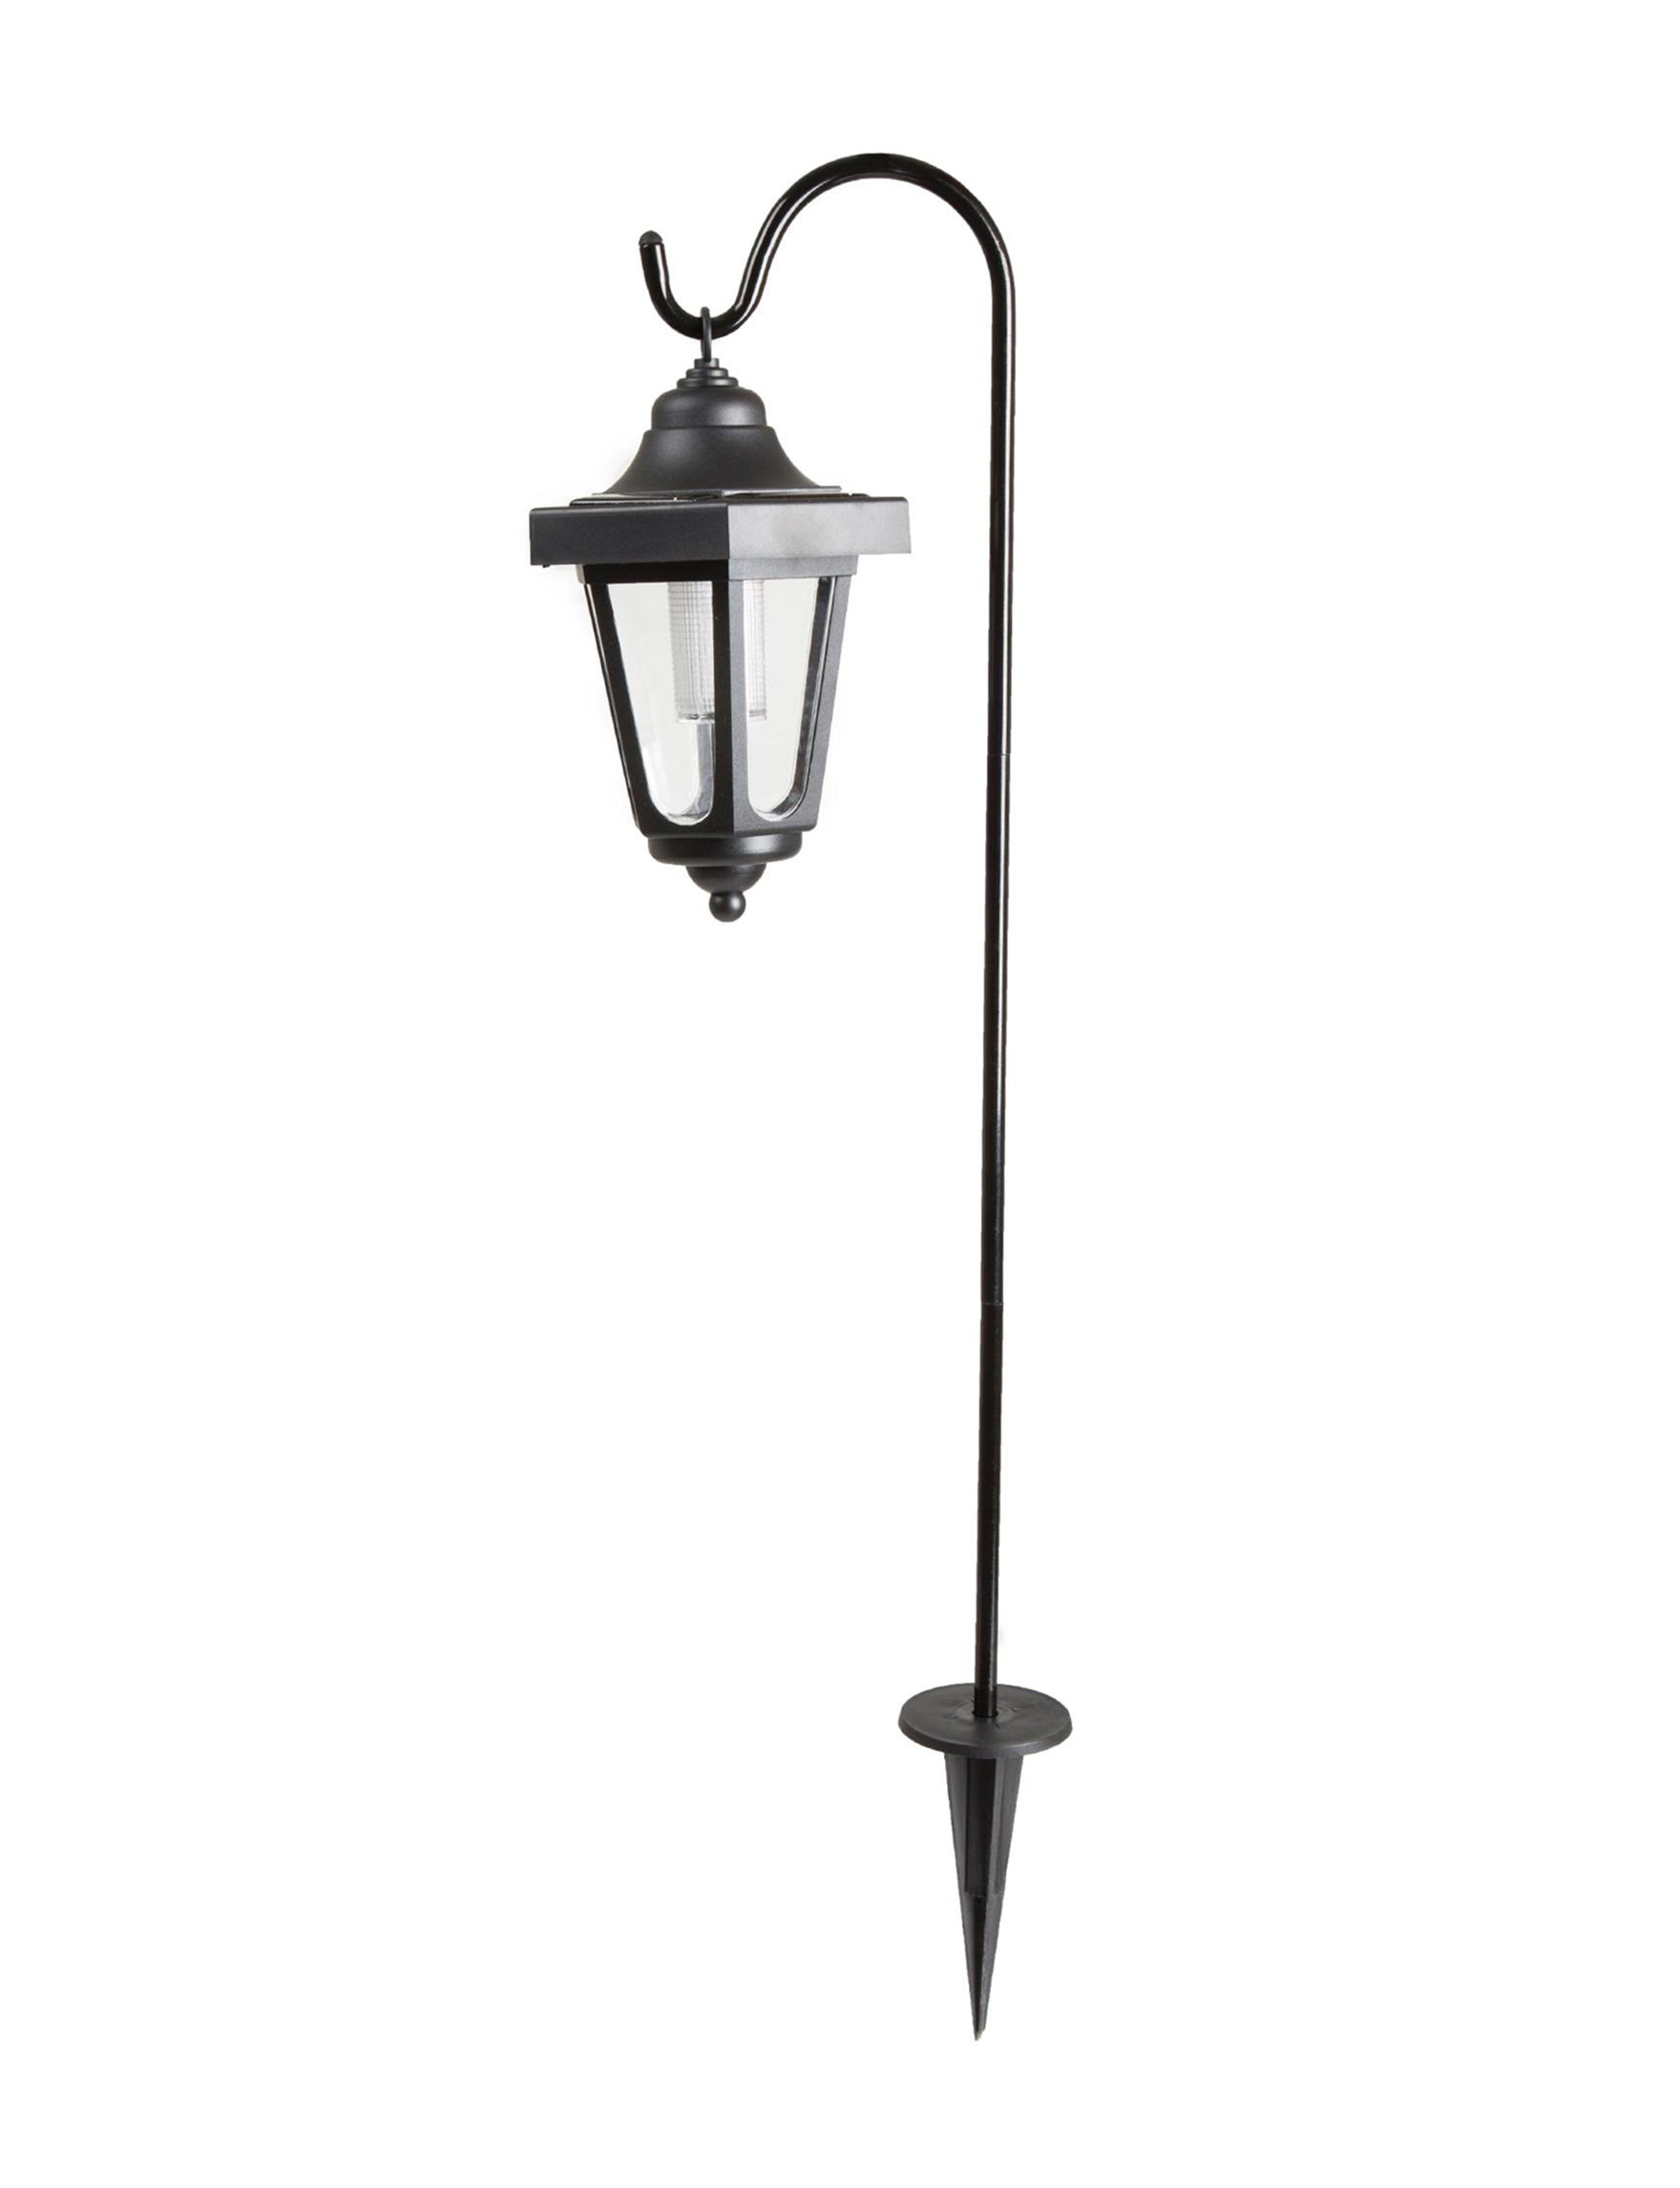 Trademark Global Black Decorative Objects Lights & Lanterns Planters & Garden Decor Home Accents Lighting & Lamps Outdoor Decor